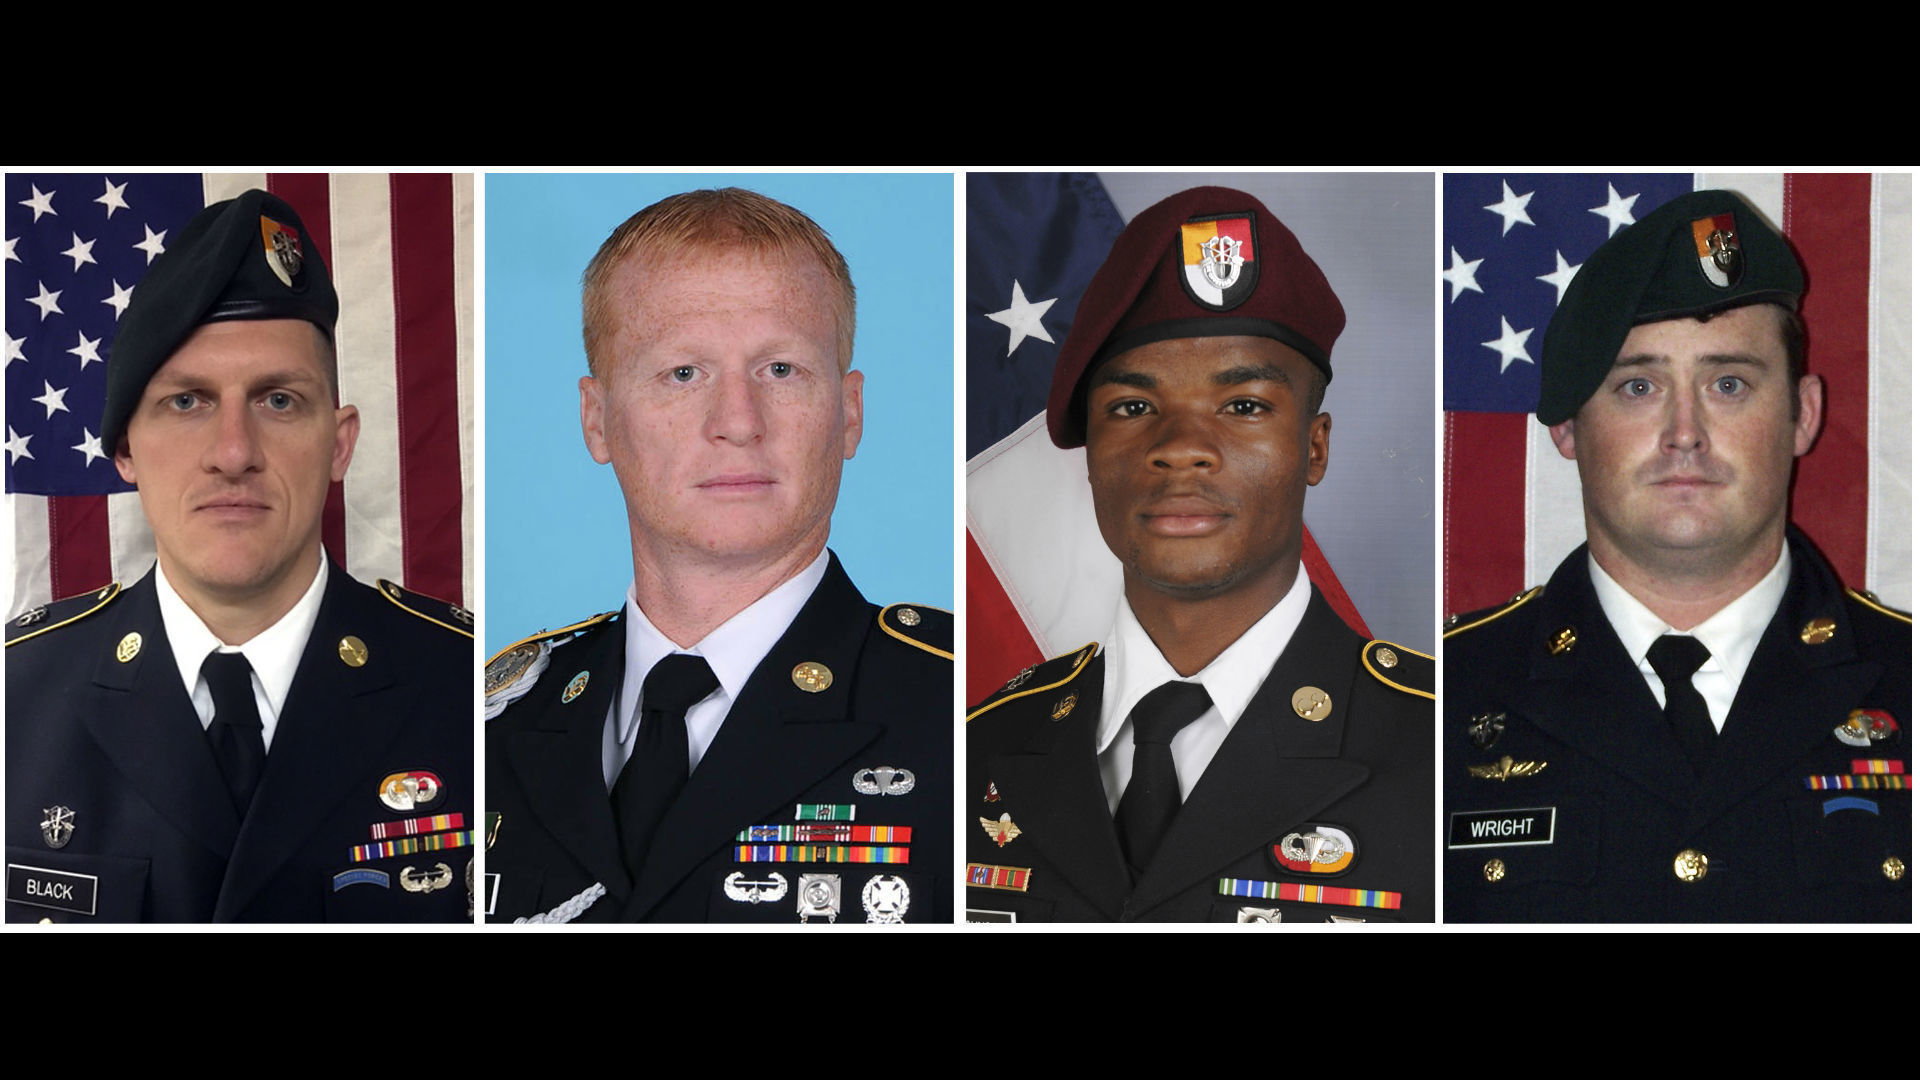 Islamic State releases a video of deadly attack on U.S. soldiers in Niger